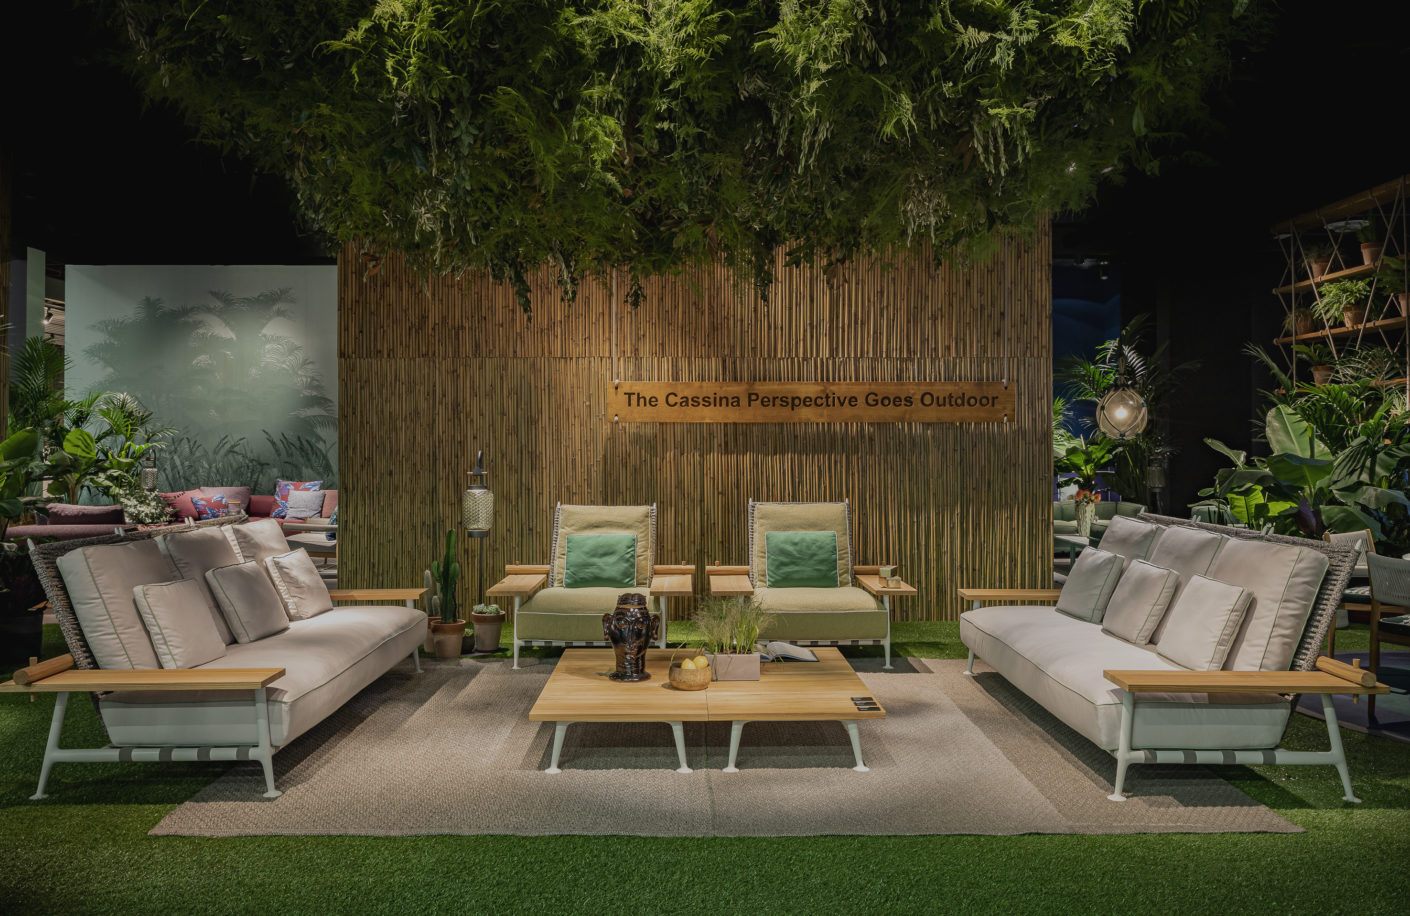 Cassina Imm Cologne 2020 Fenc E Nature Philippe Starck Cassina Outdoor Collection Stylepark